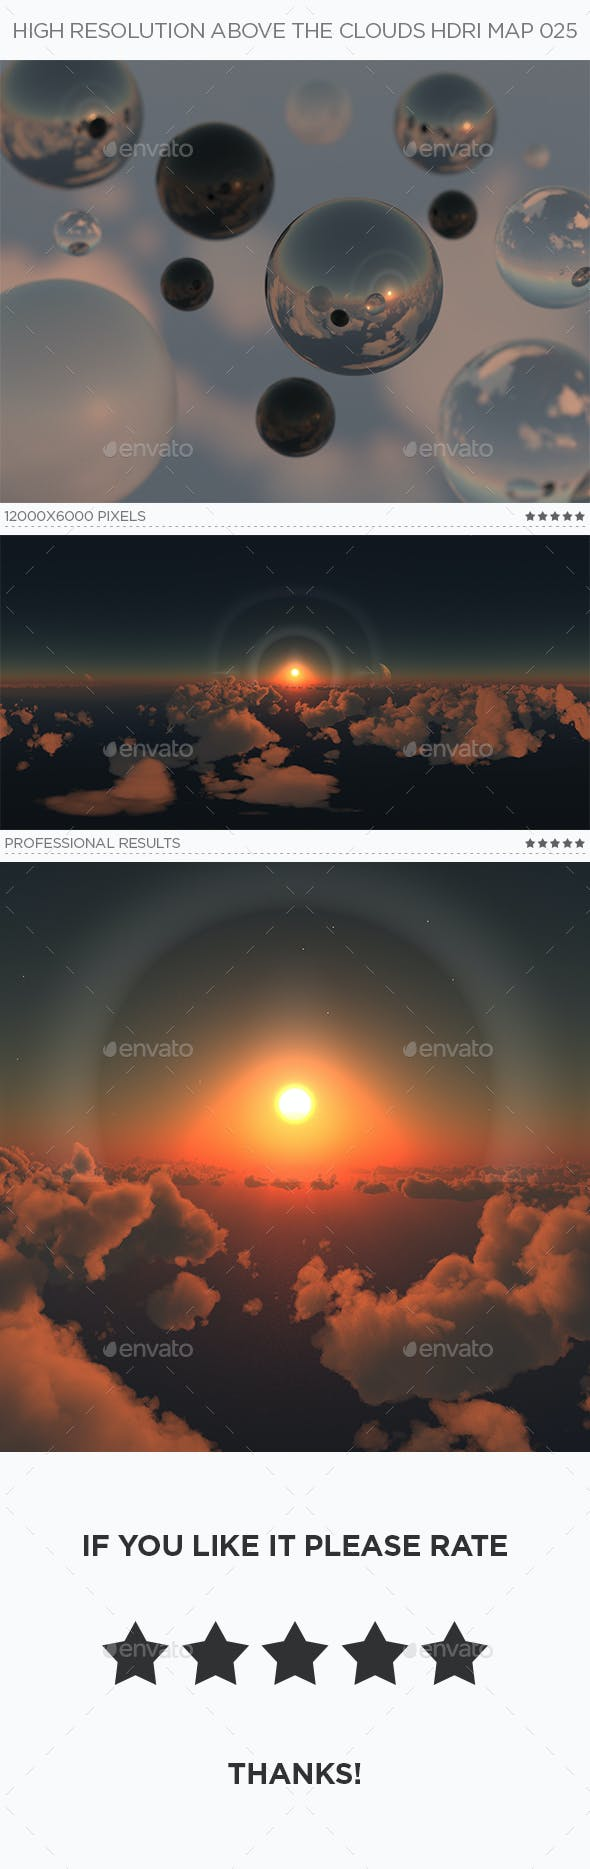 High Resolution Above The Clouds HDRi Map 025 - 3DOcean Item for Sale